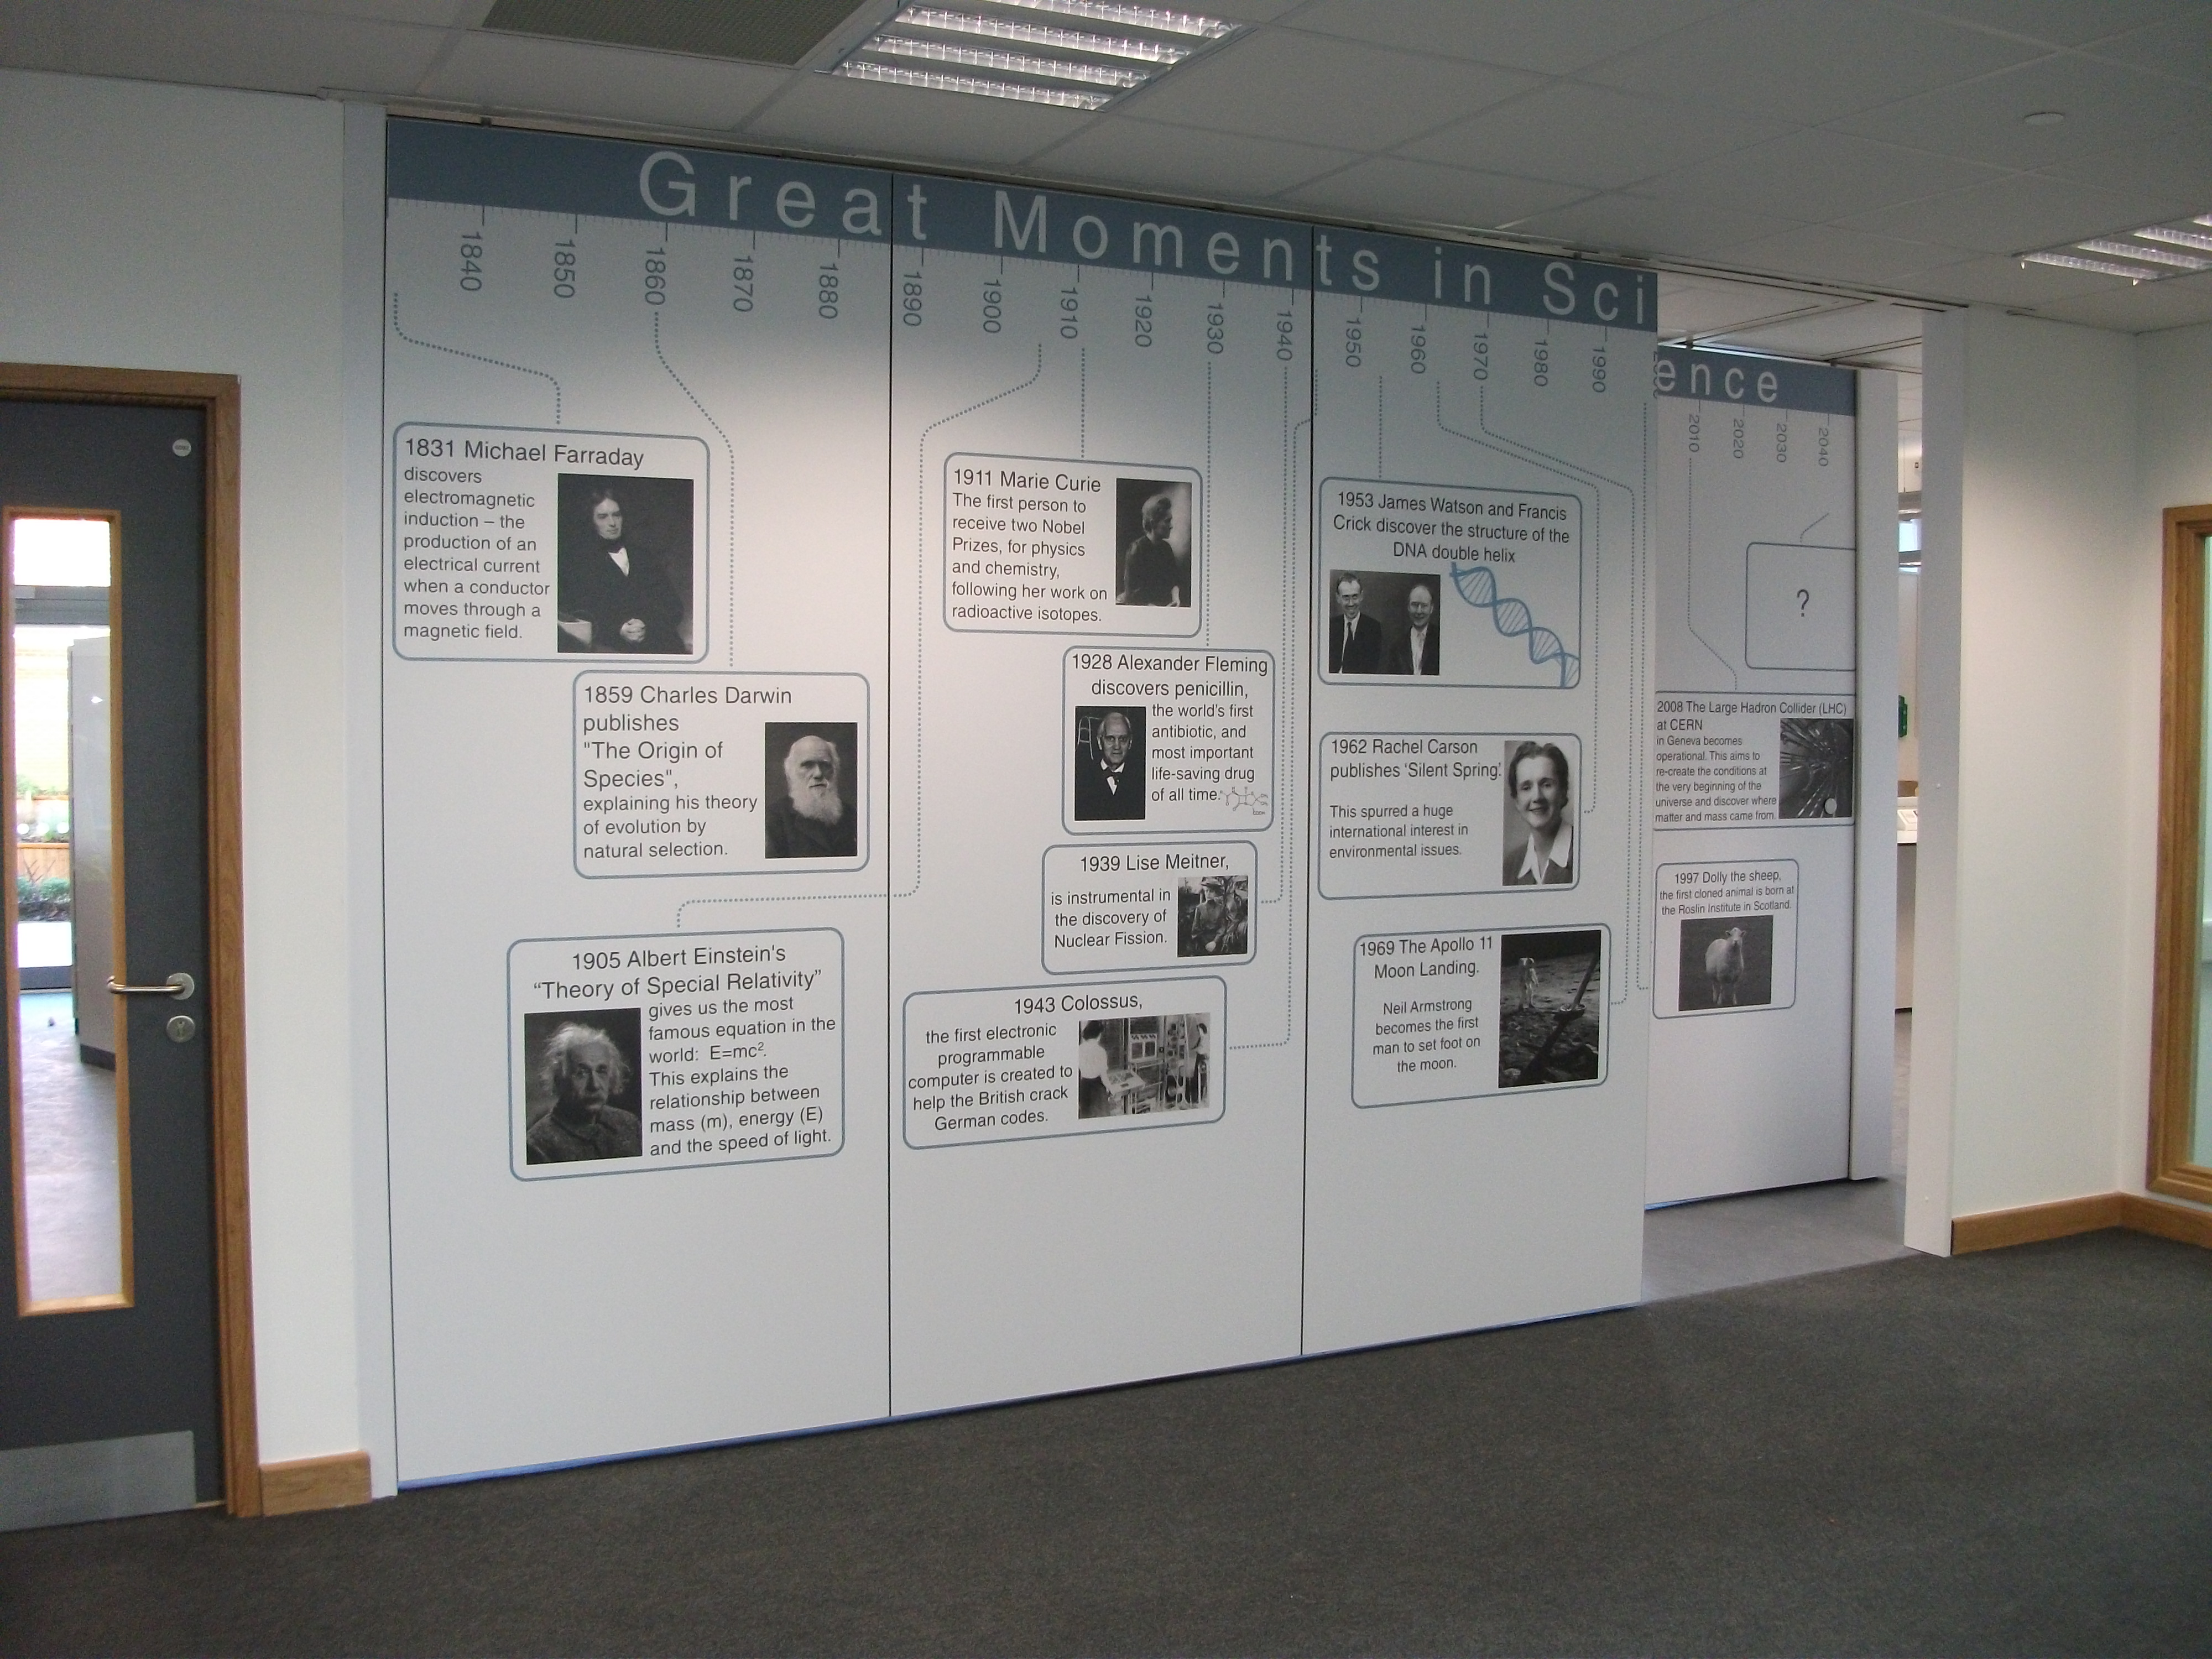 moveable wall sliding room divider in a school with printed graphics on the panels